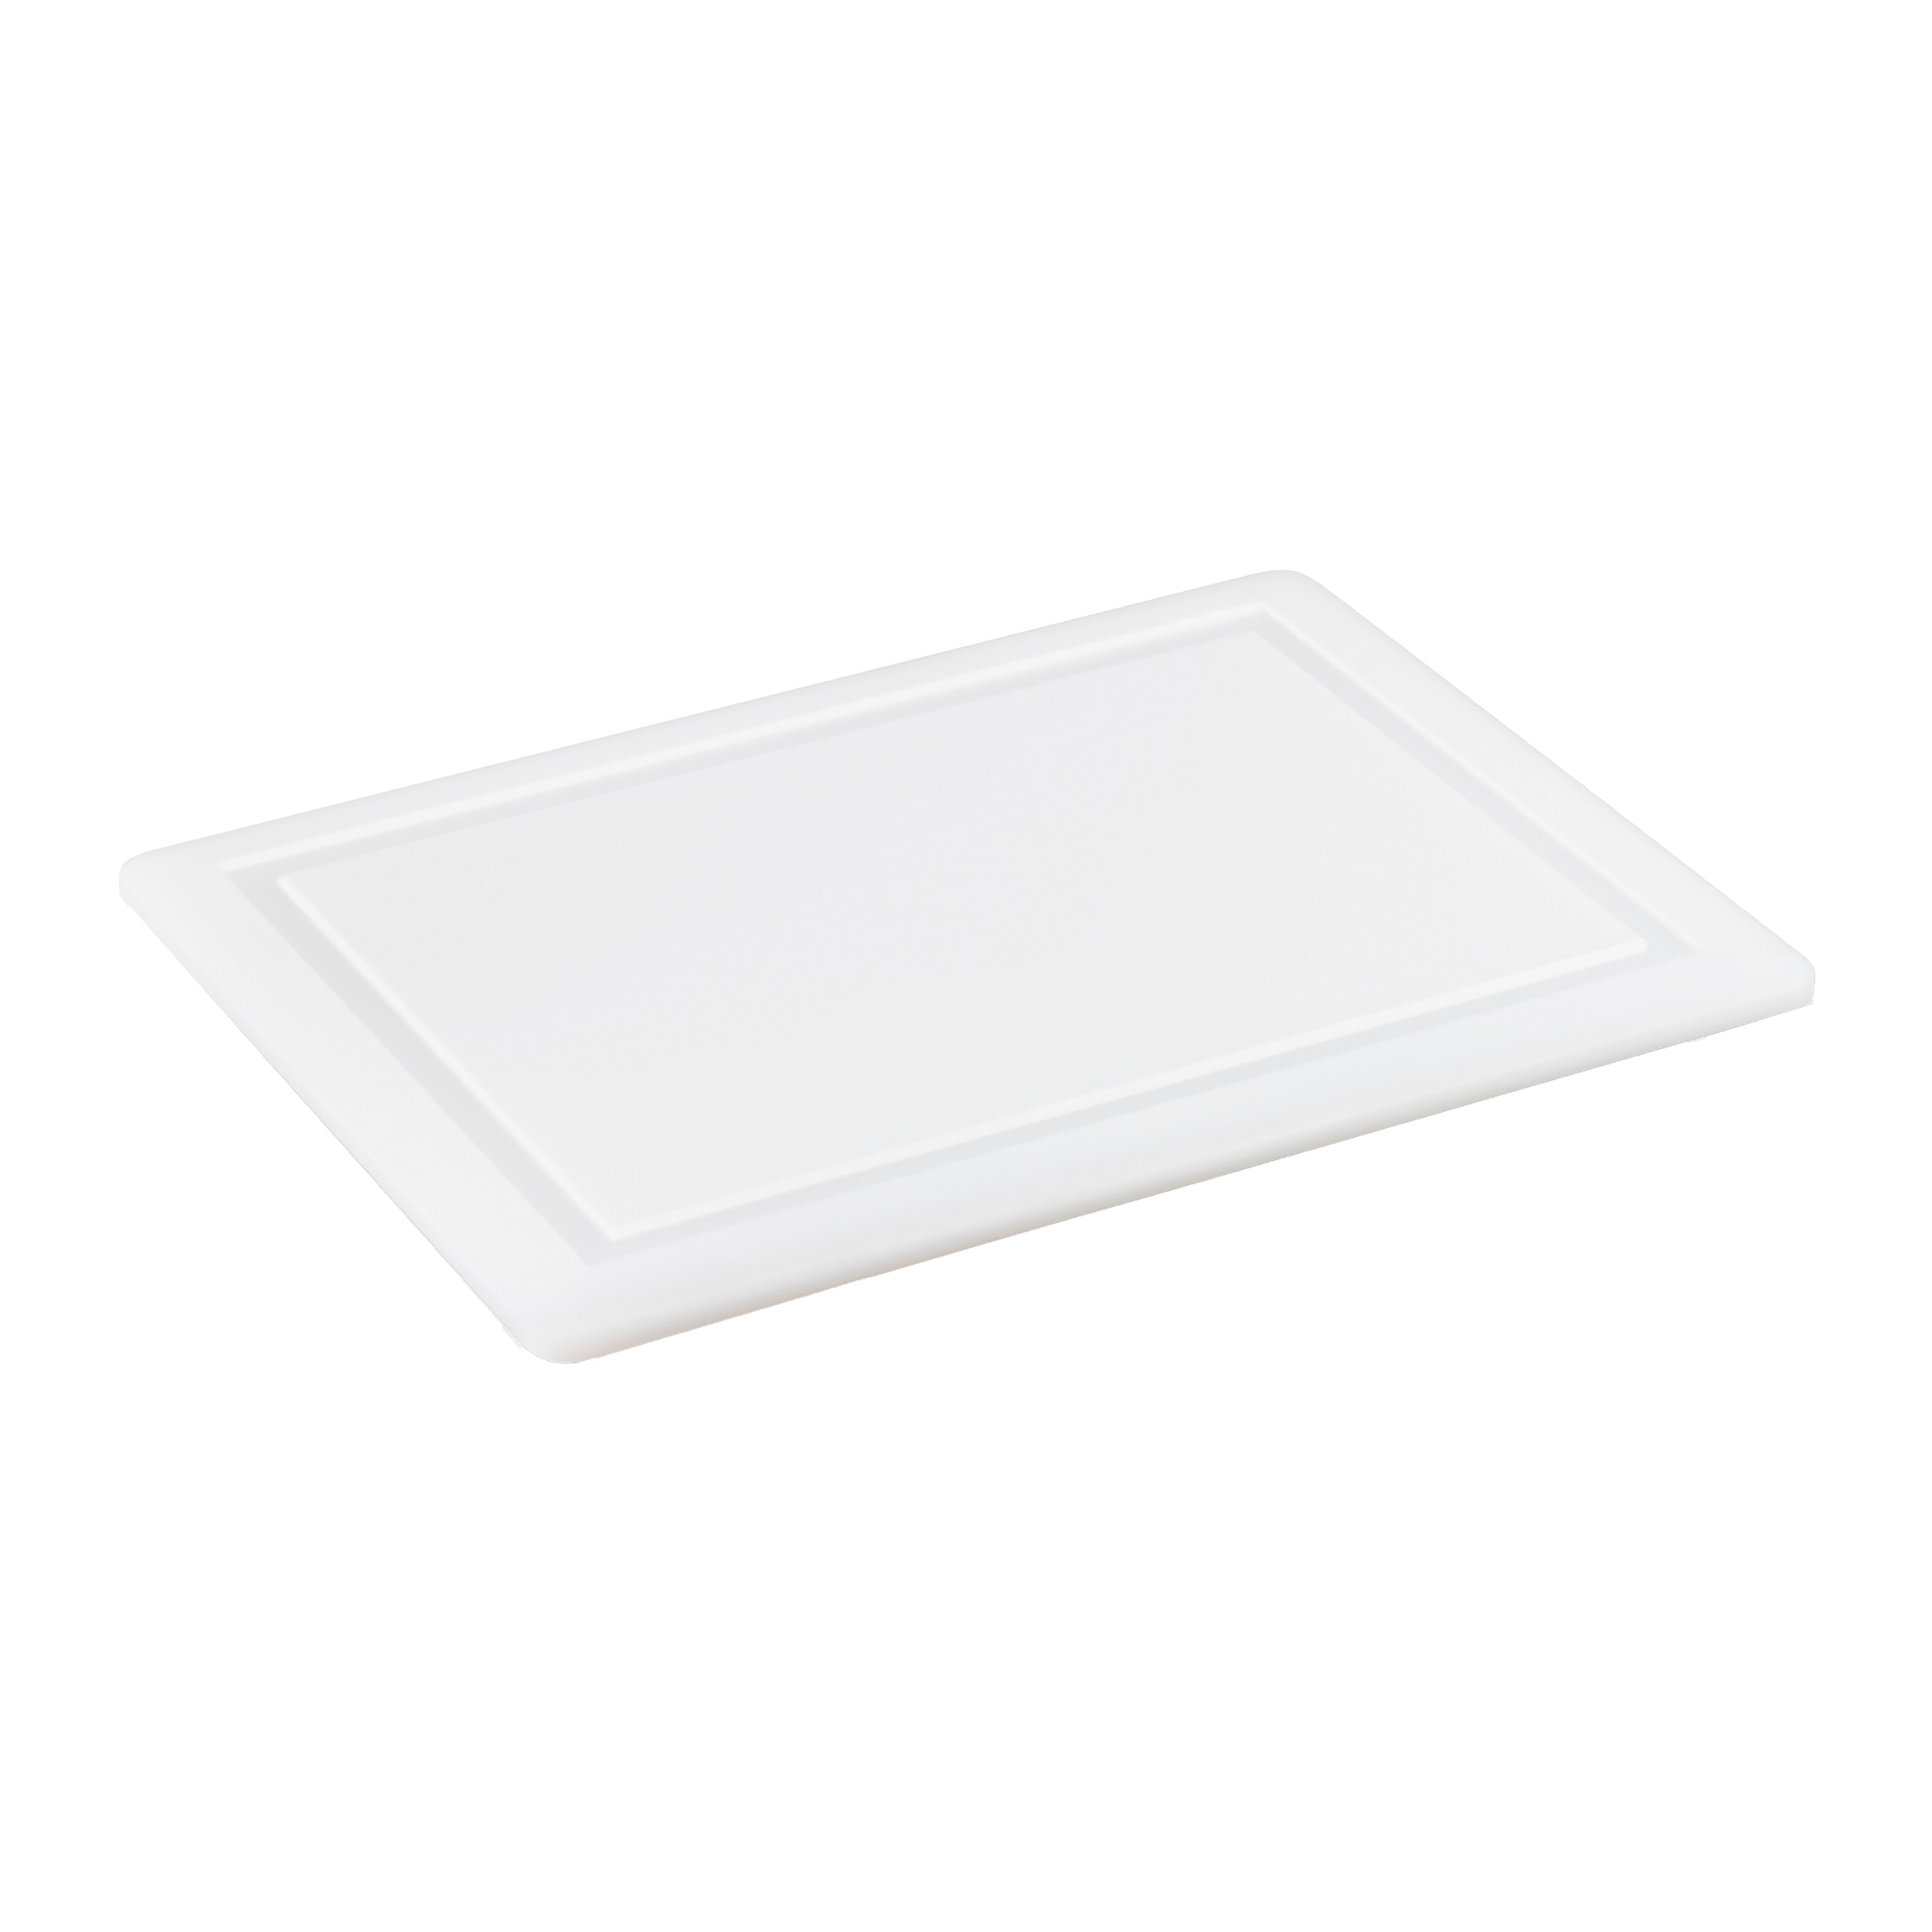 Synthetic prep cutting board with well